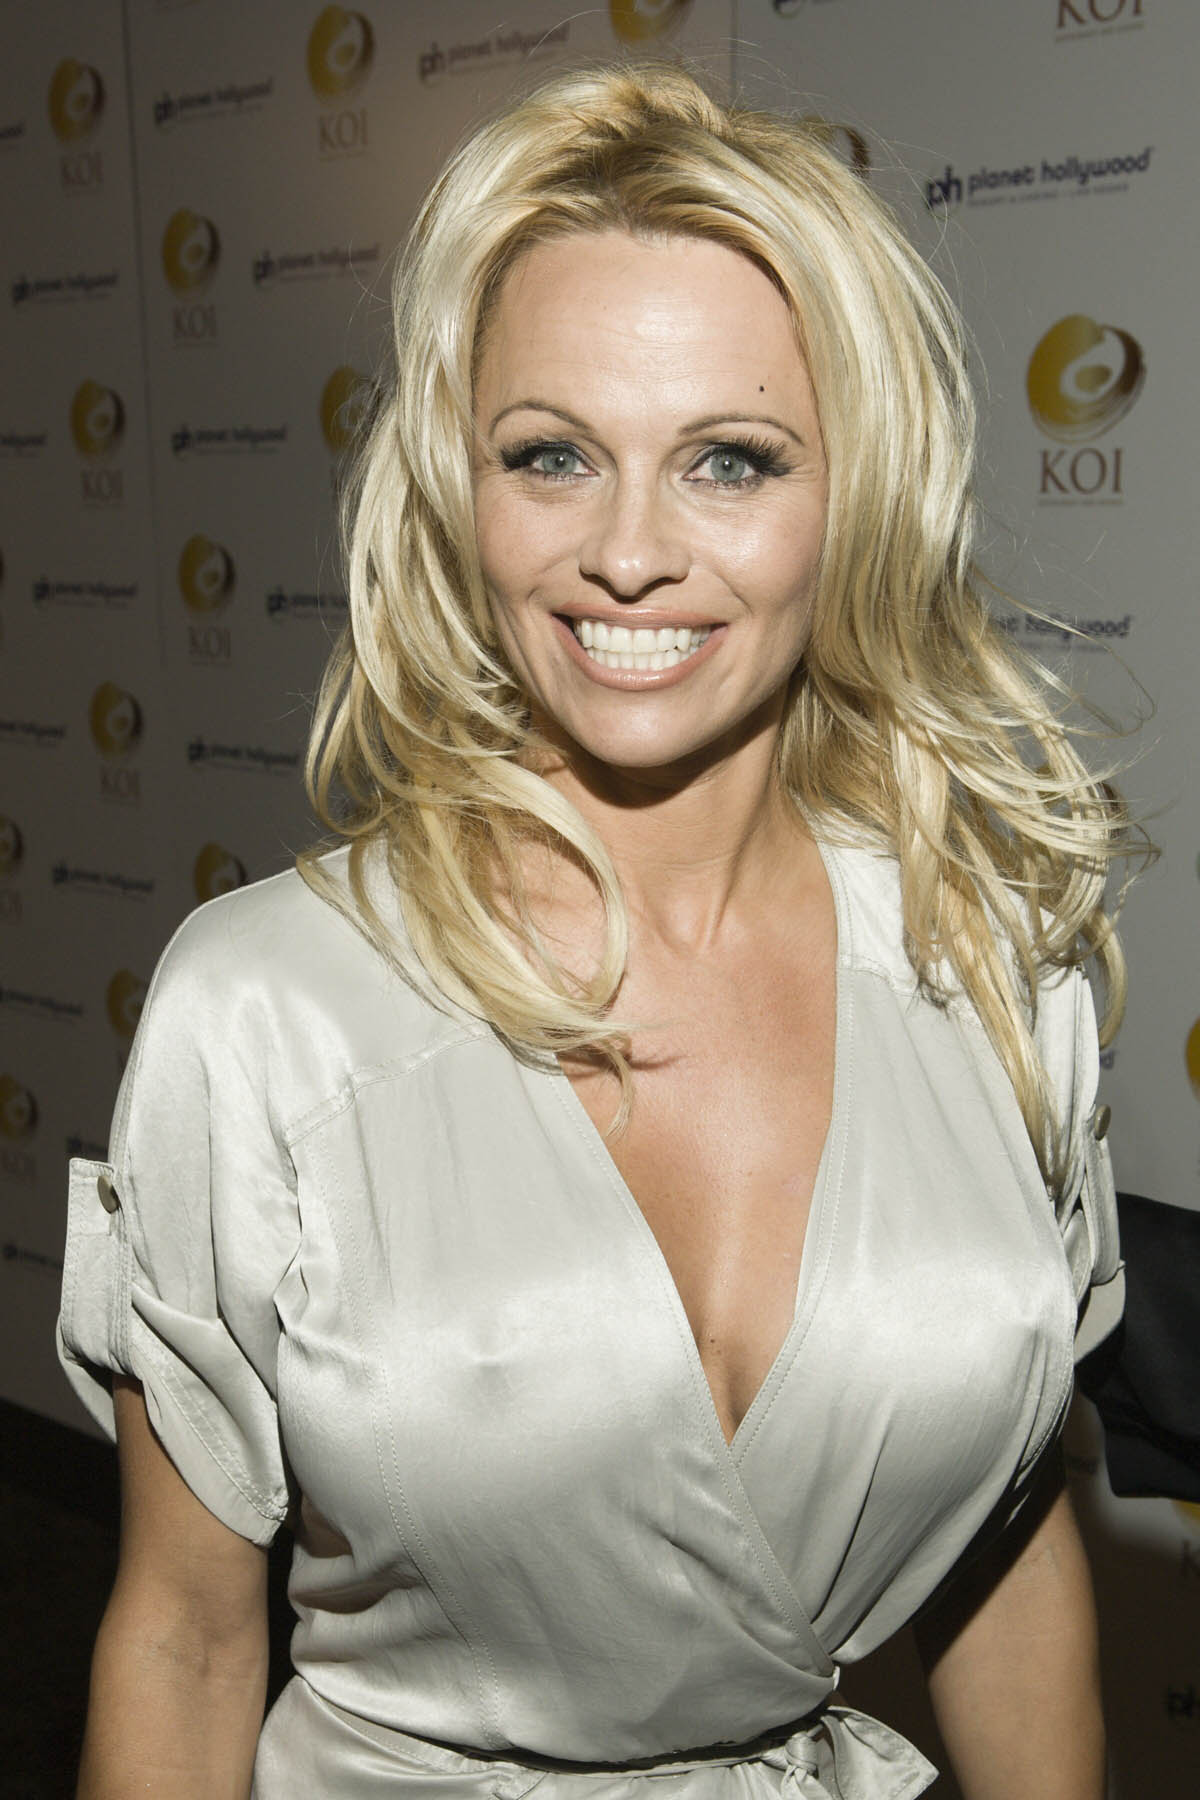 Actress Pam Anderson - age: 53